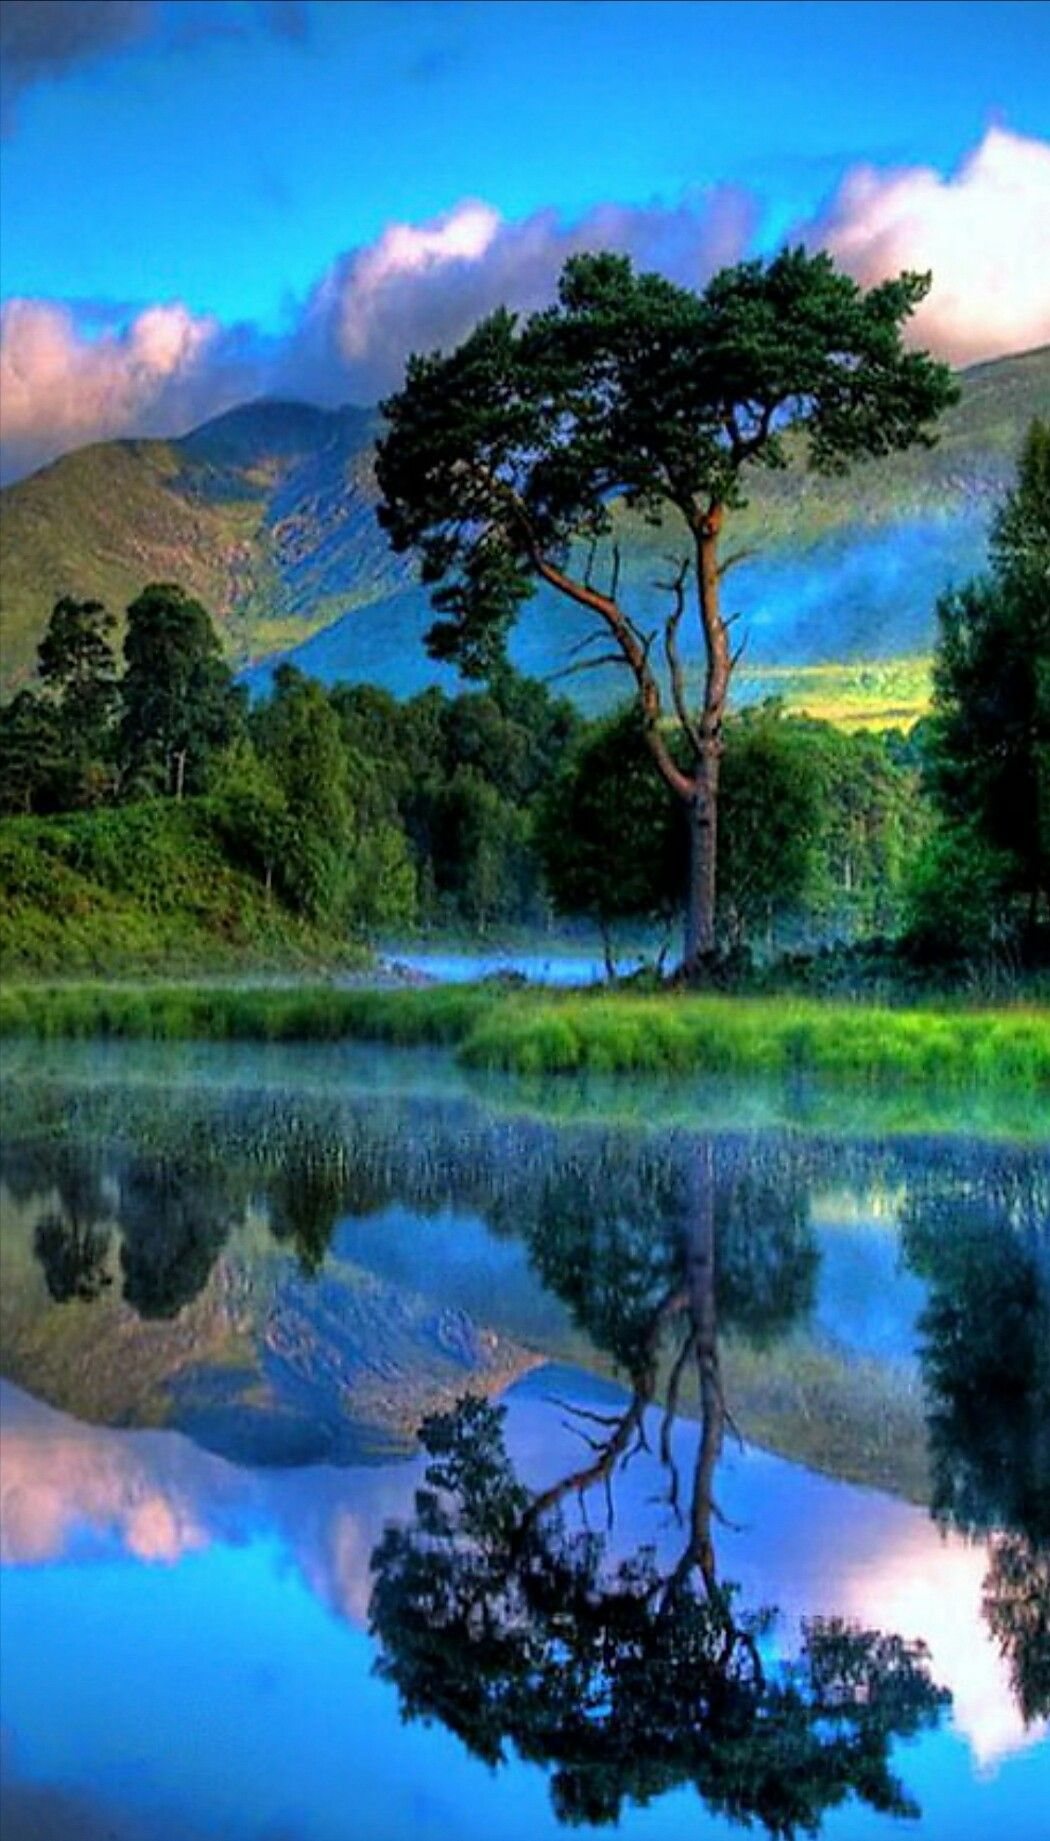 What A Beautiful Scene Looks Like New Zealand But Of Course Could Be Anywhere In The World Beautiful Nature Nature Scenes Nature Pictures